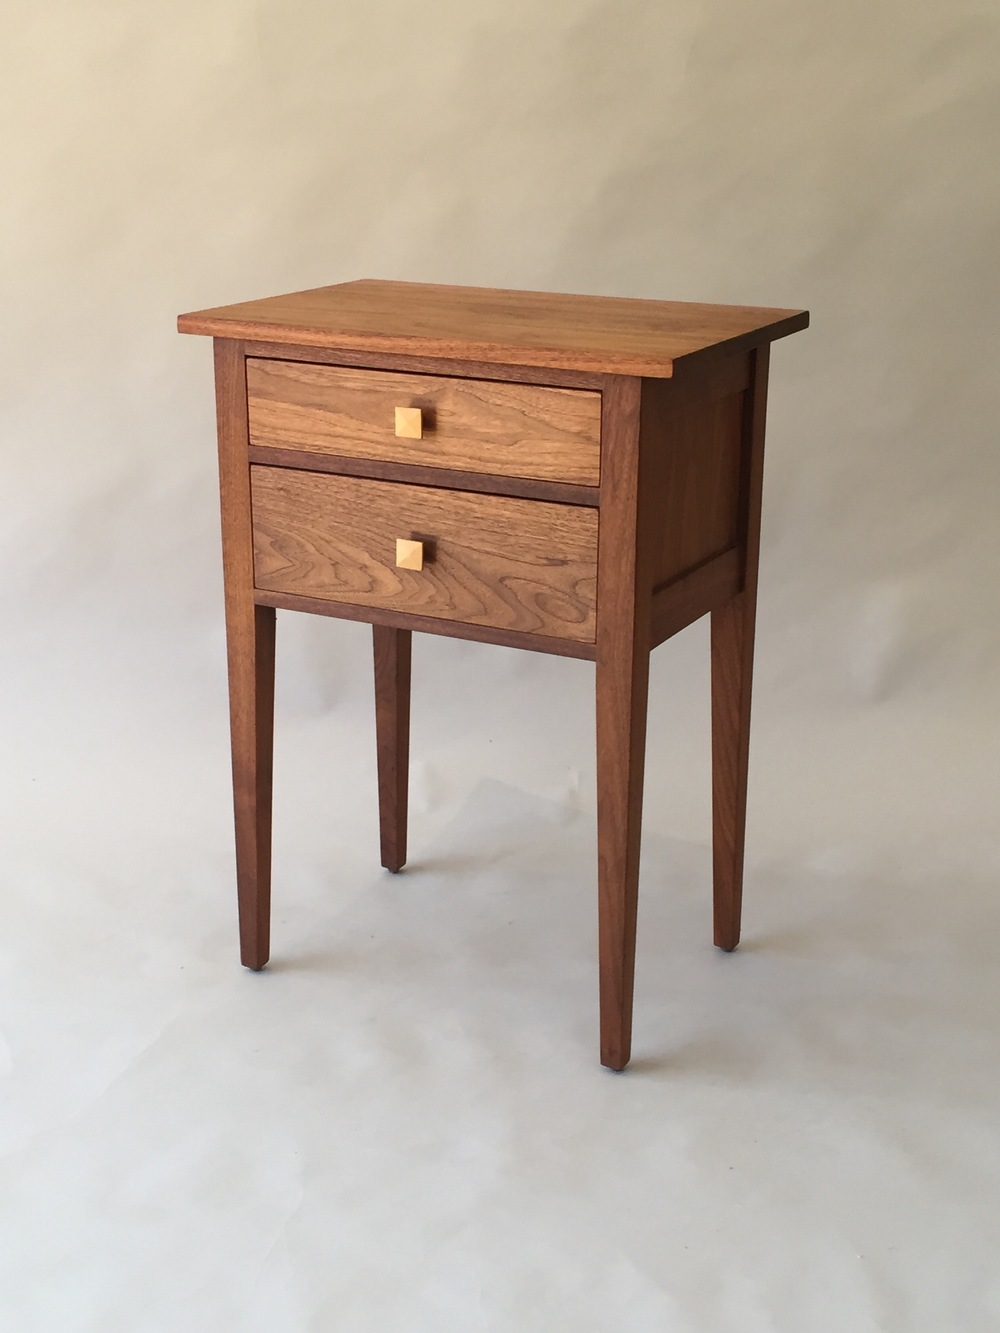 Two Drawer Shaker Sidetable